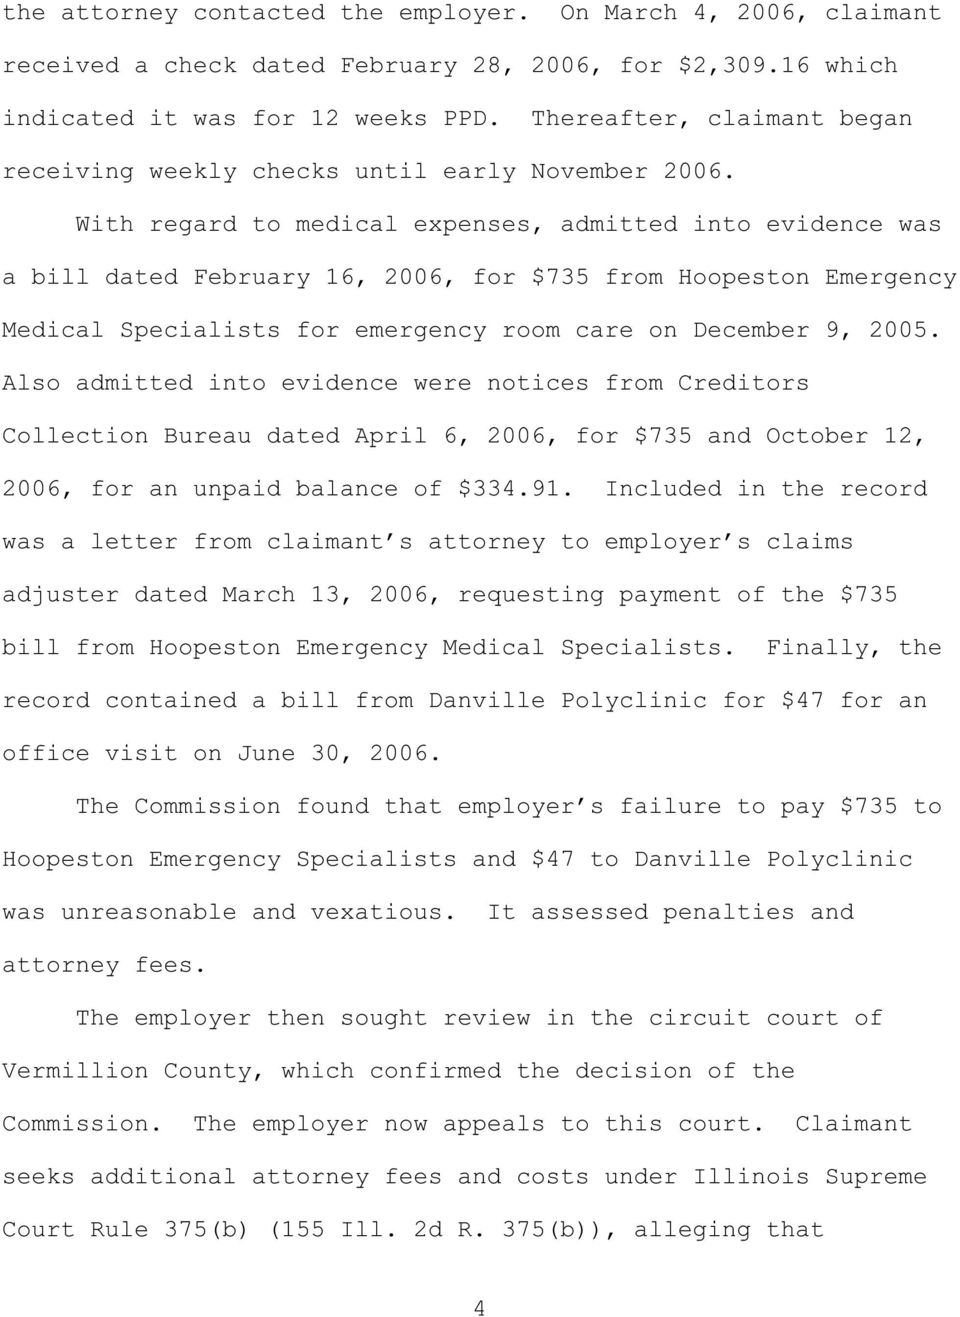 With regard to medical expenses, admitted into evidence was a bill dated February 16, 2006, for $735 from Hoopeston Emergency Medical Specialists for emergency room care on December 9, 2005.